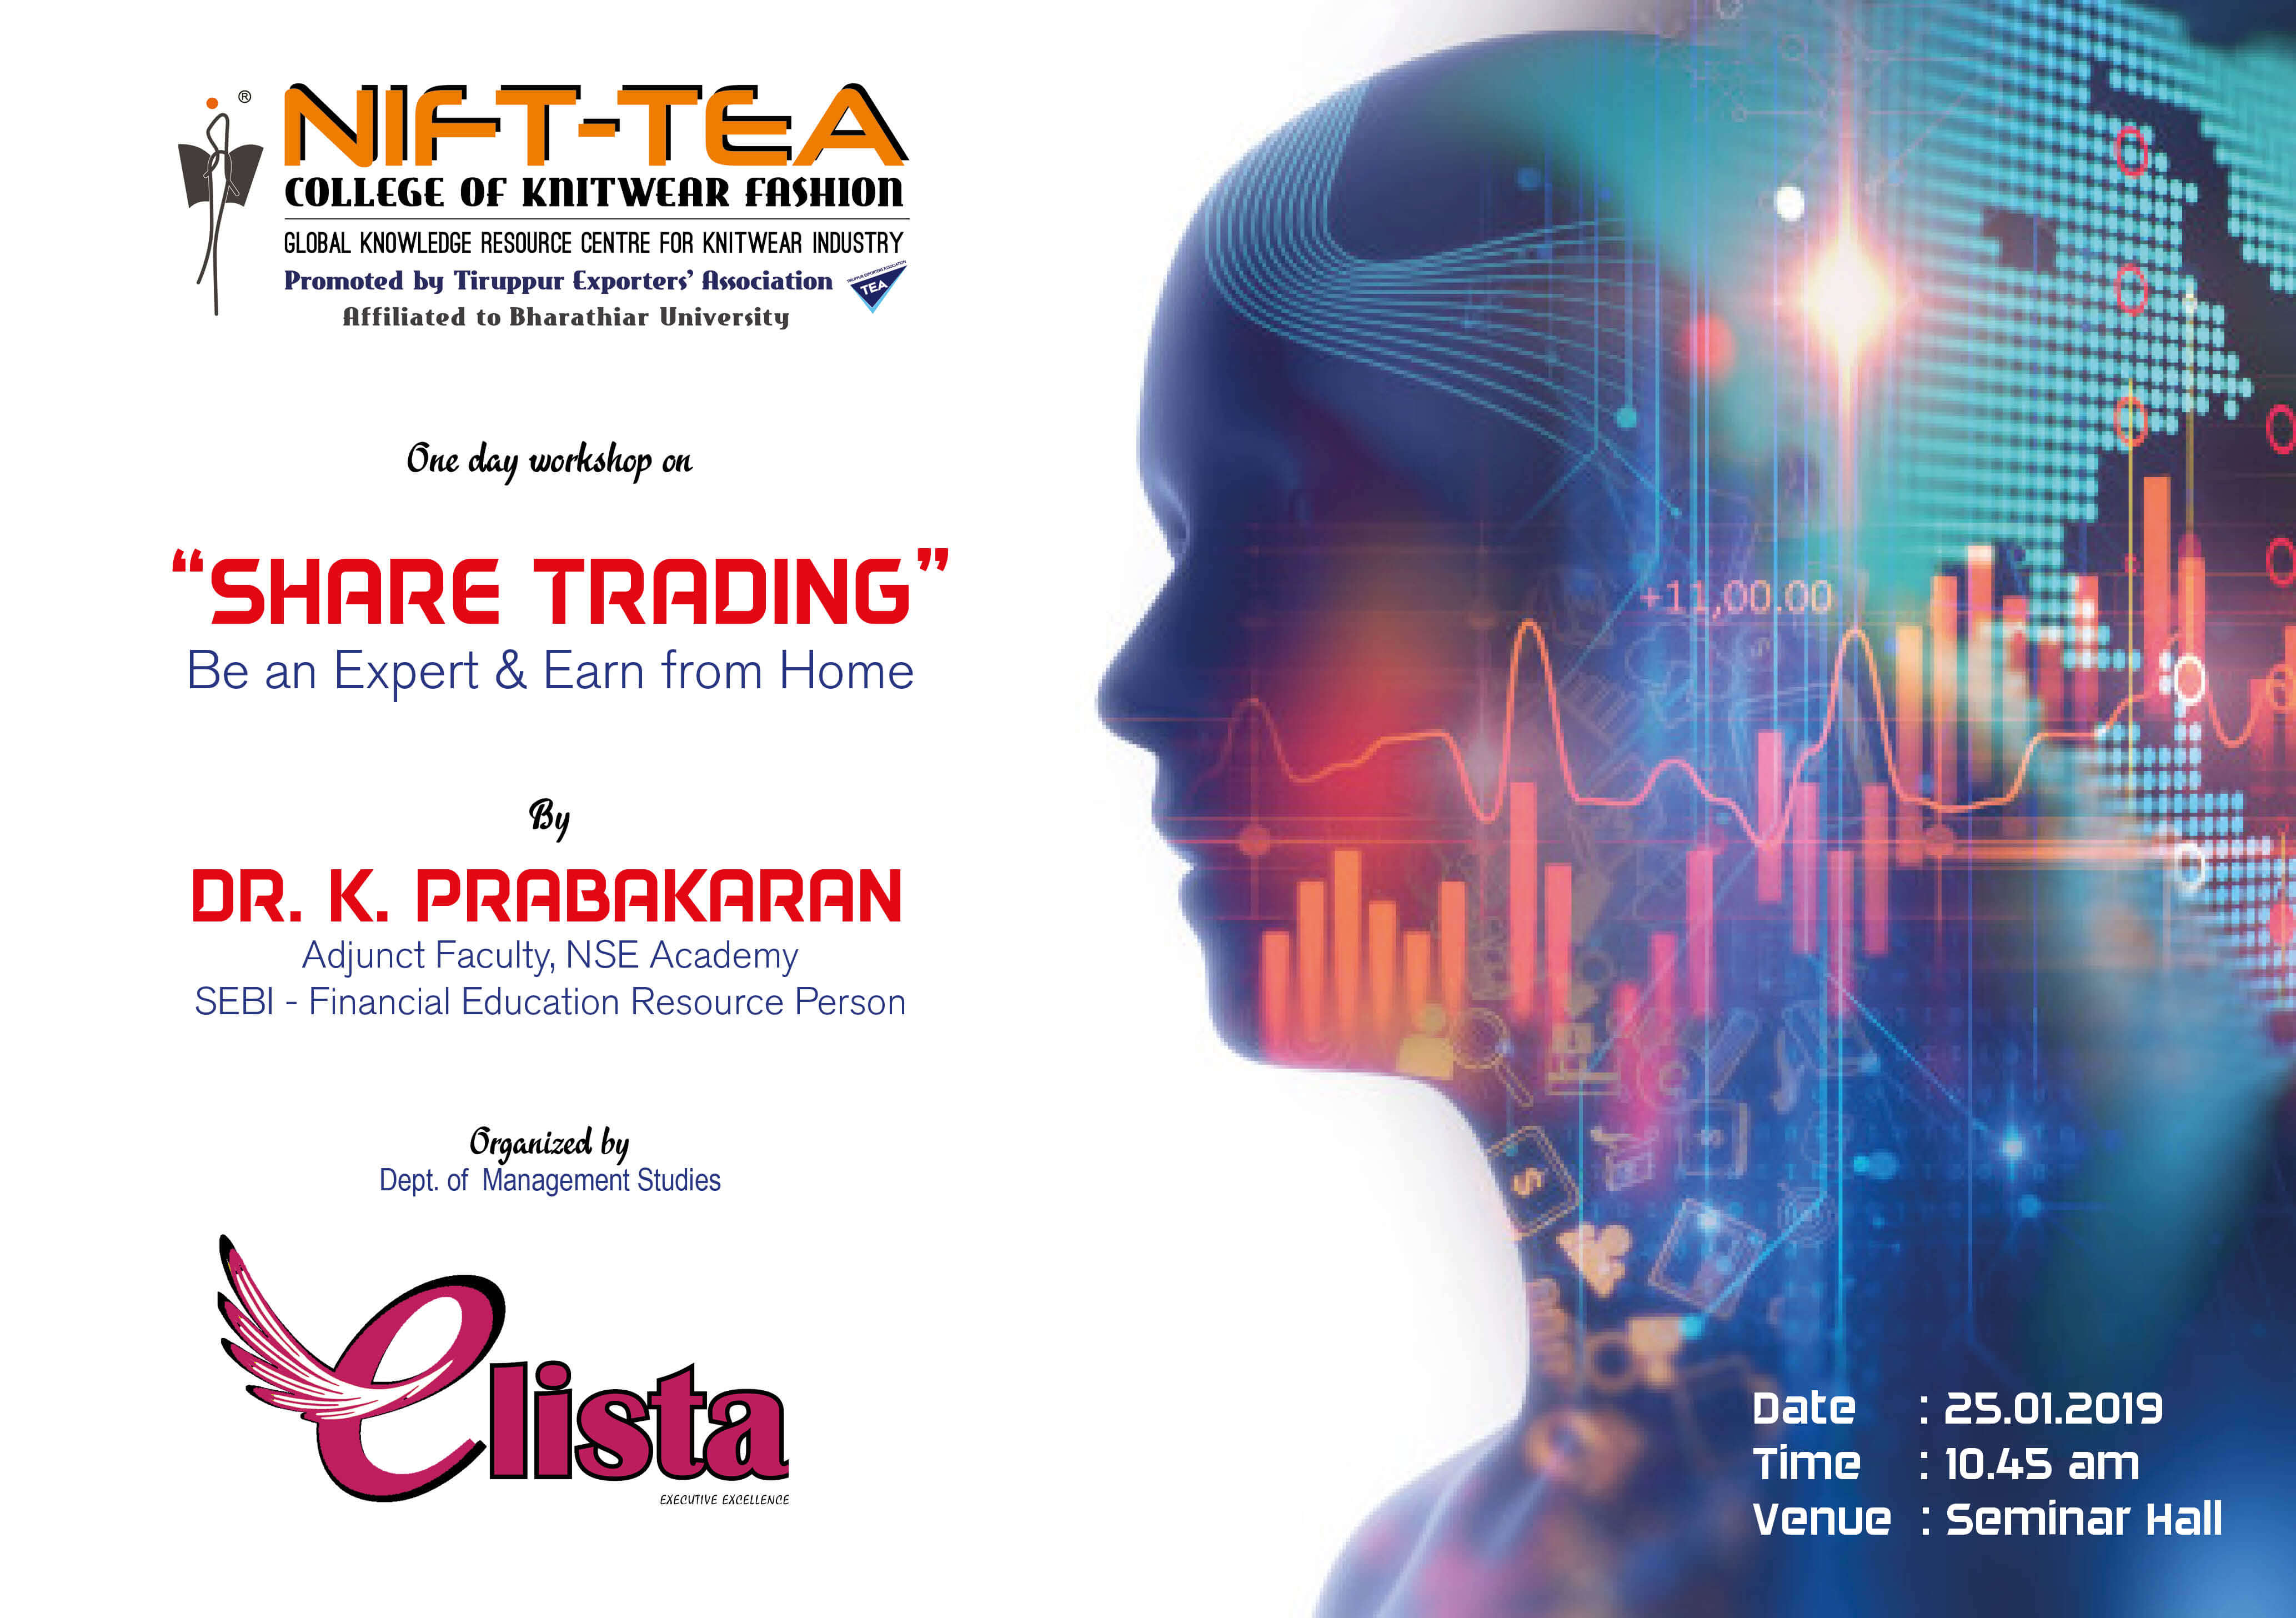 One Day Workshop on SHARE TRADING